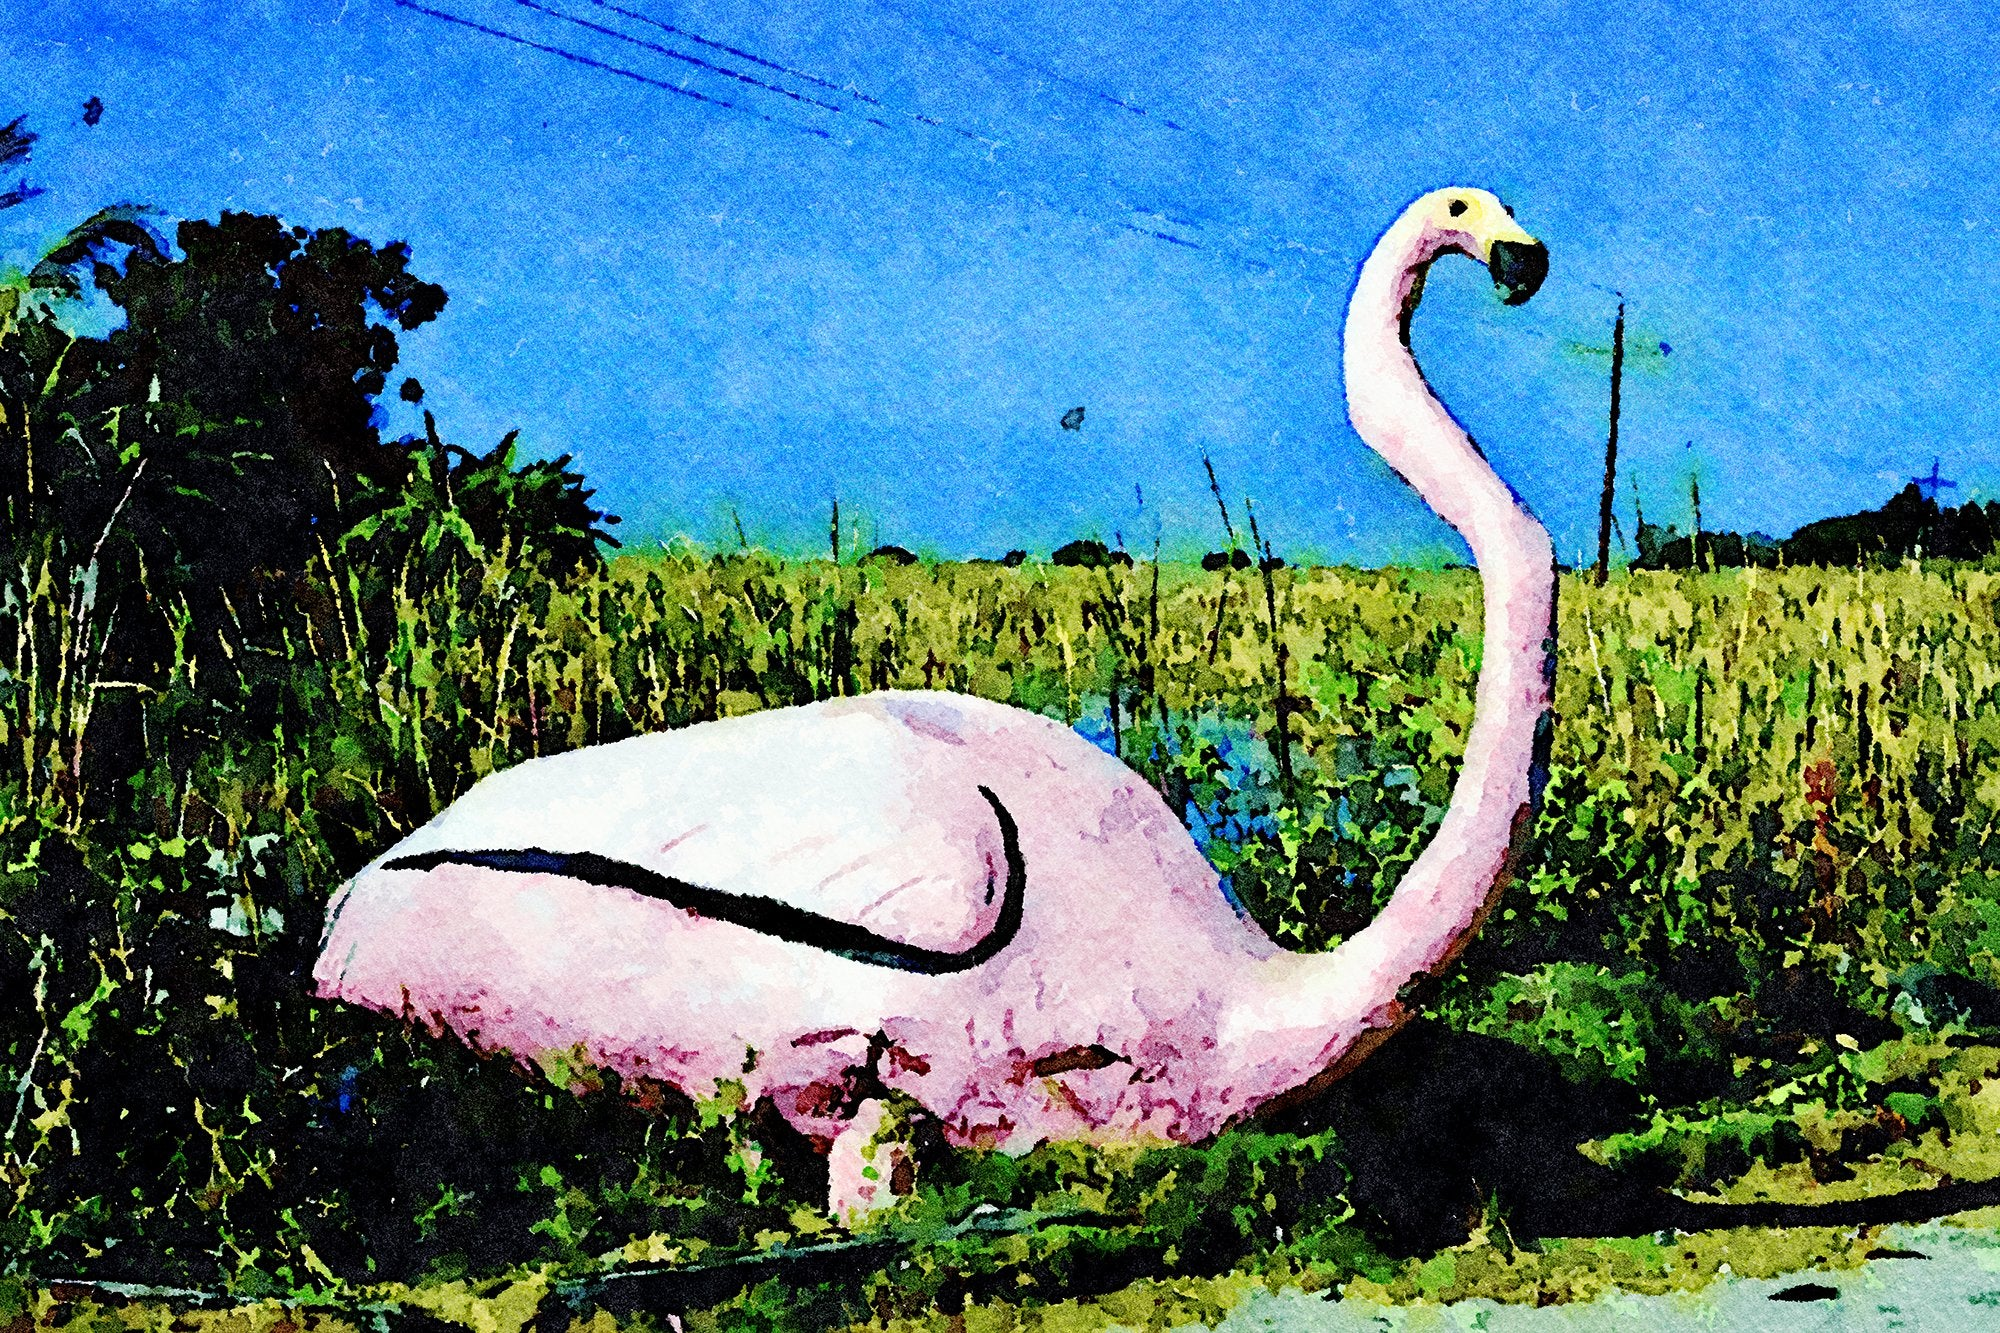 Roadside Flamingo Statue, Frog City, Route 41, Florida, Reworked, Series 1